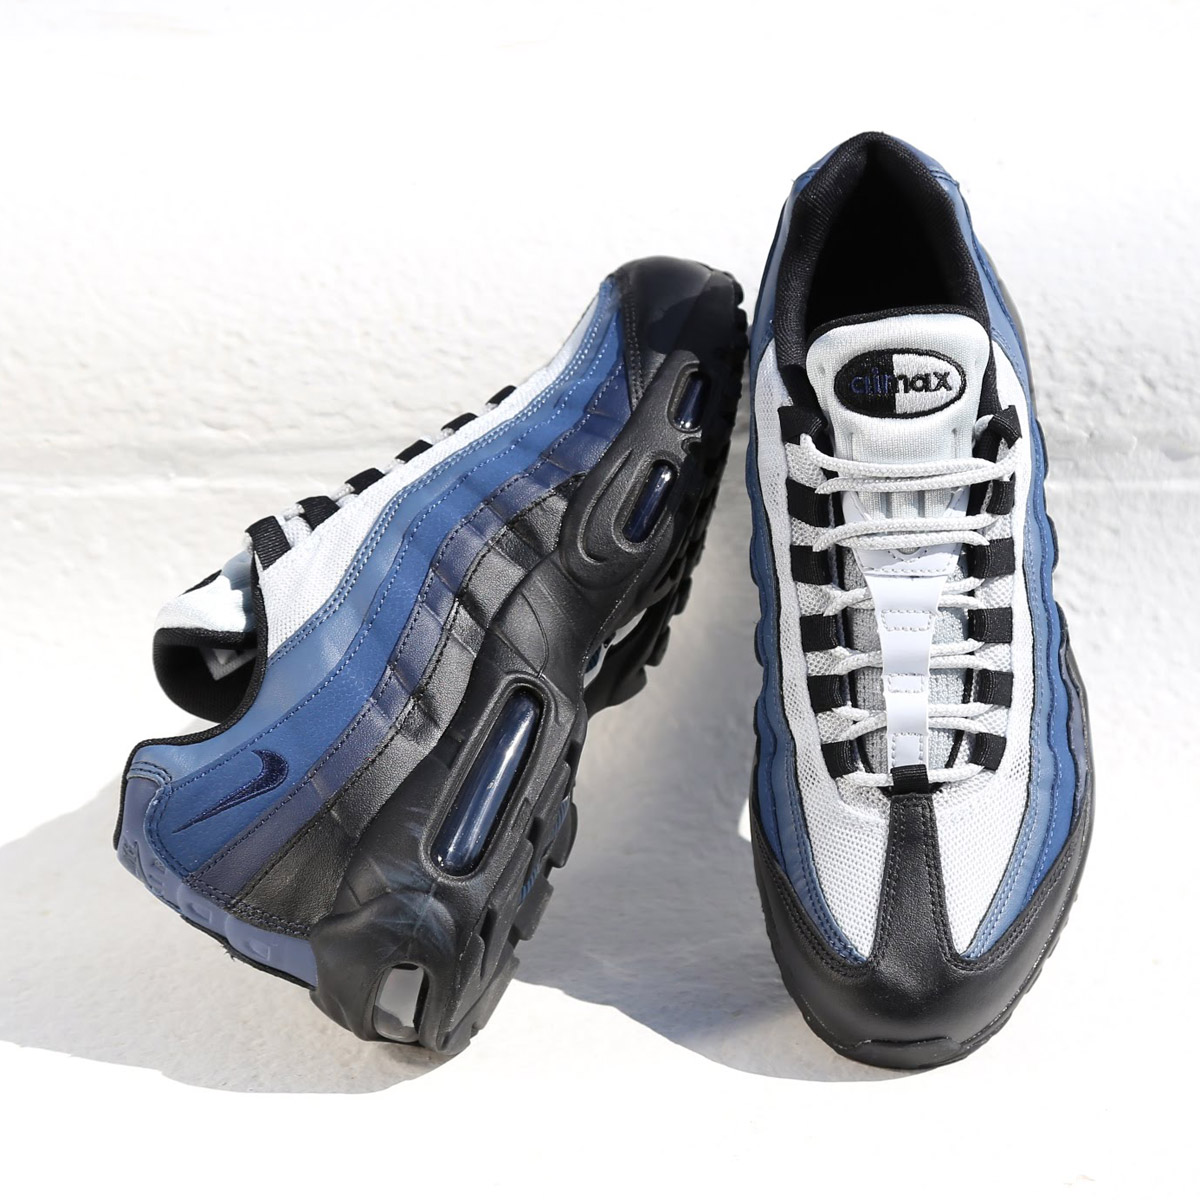 NIKE AIR MAX 95 ESSENTIAL (Kie Ney AMAX 95 essential) BLACK OBSIDIAN-NAVY  BLUE-PURE PLATINUM 18SP-I 859bb3106a2d